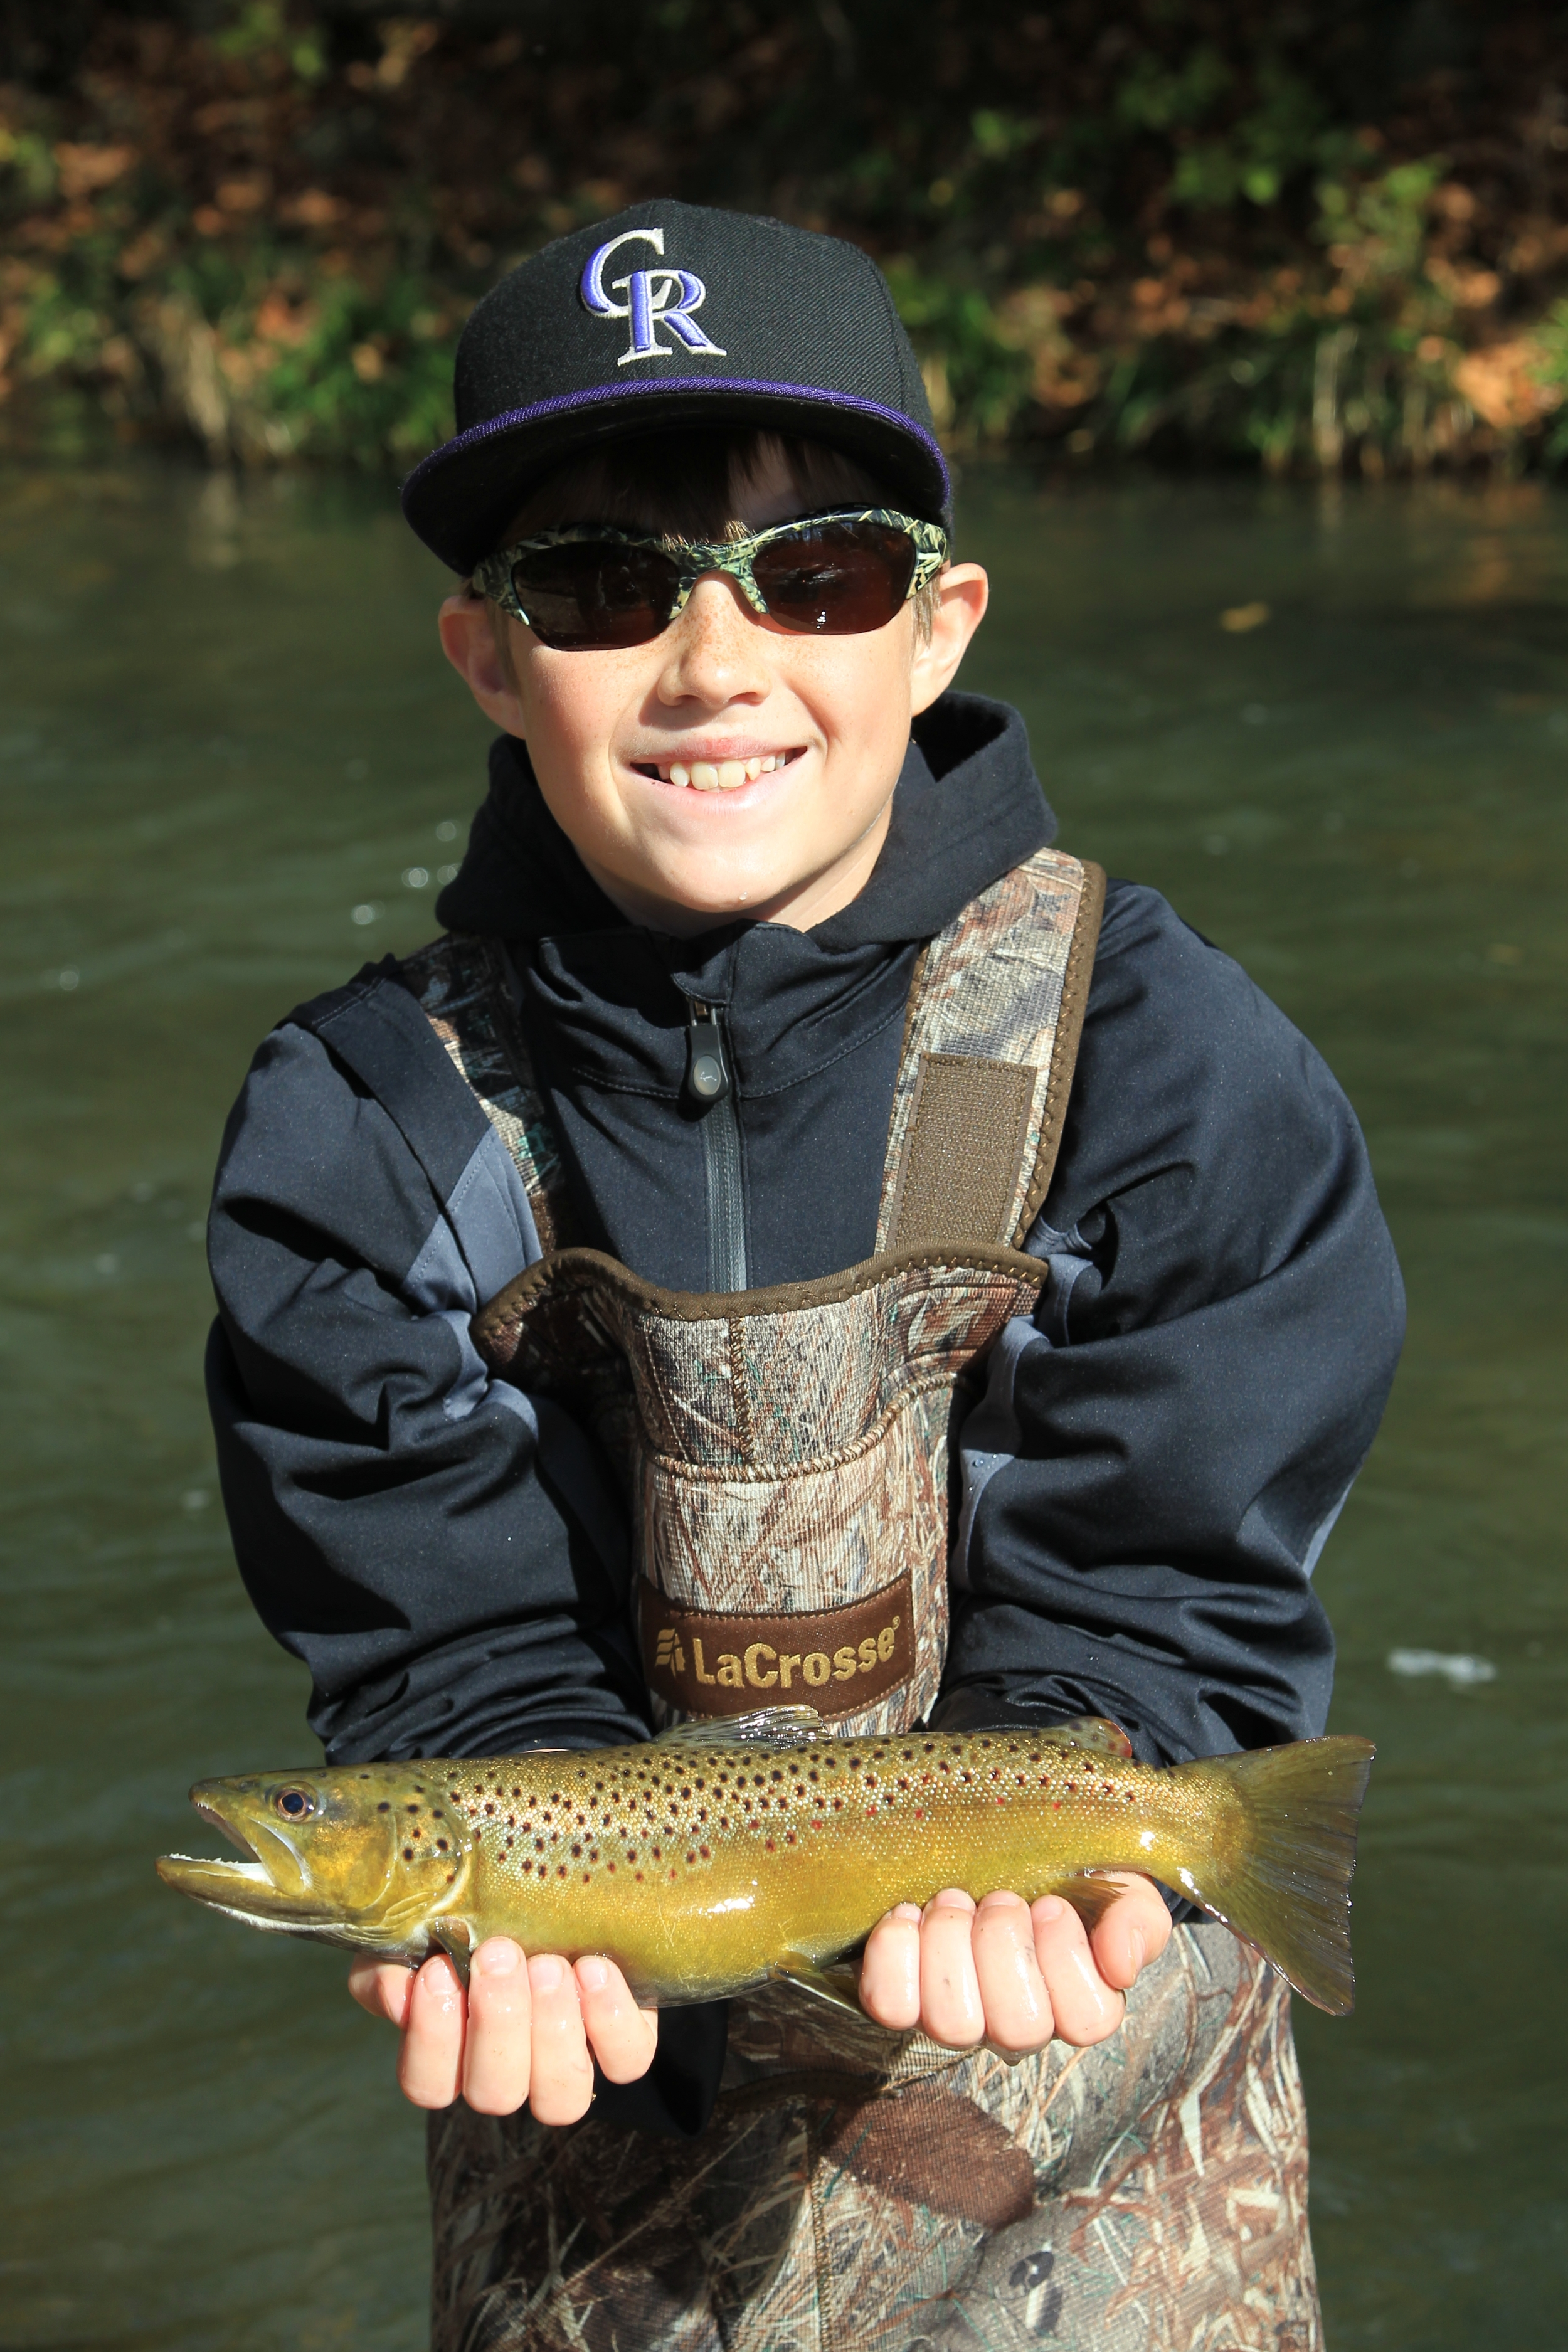 Kids get in on the trout fishing fun at Dry Run Creek on the Norfork River, which is strictly catch-and-release.